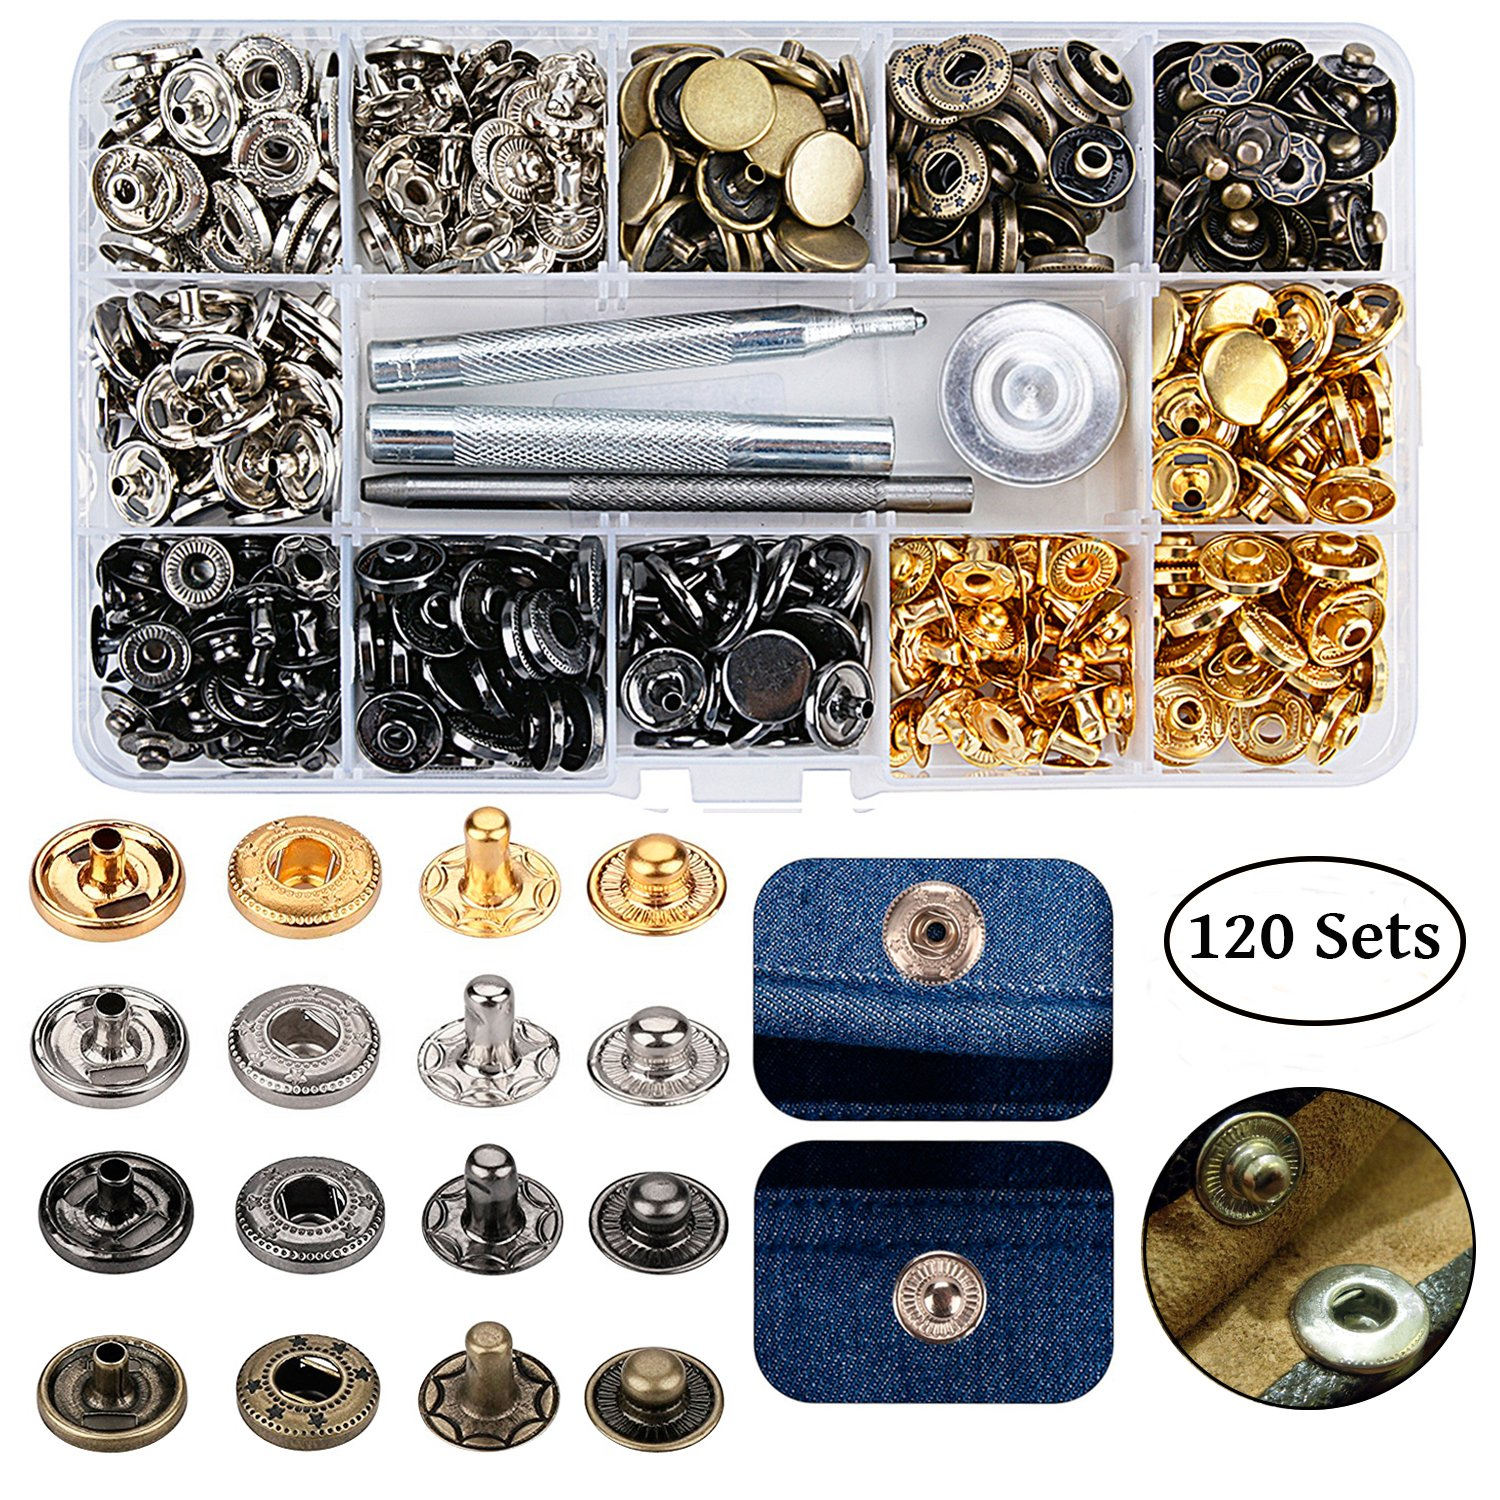 120 Sets Snap Fastener Kit, Outggek Leather Snap Buttons Press Studs with 4PCS Fixing Tools, Metal Snaps for Clothing Leather Bracelet Jeans Wear Jacket Bags Belts, 633(12.5mm) by Outgeek